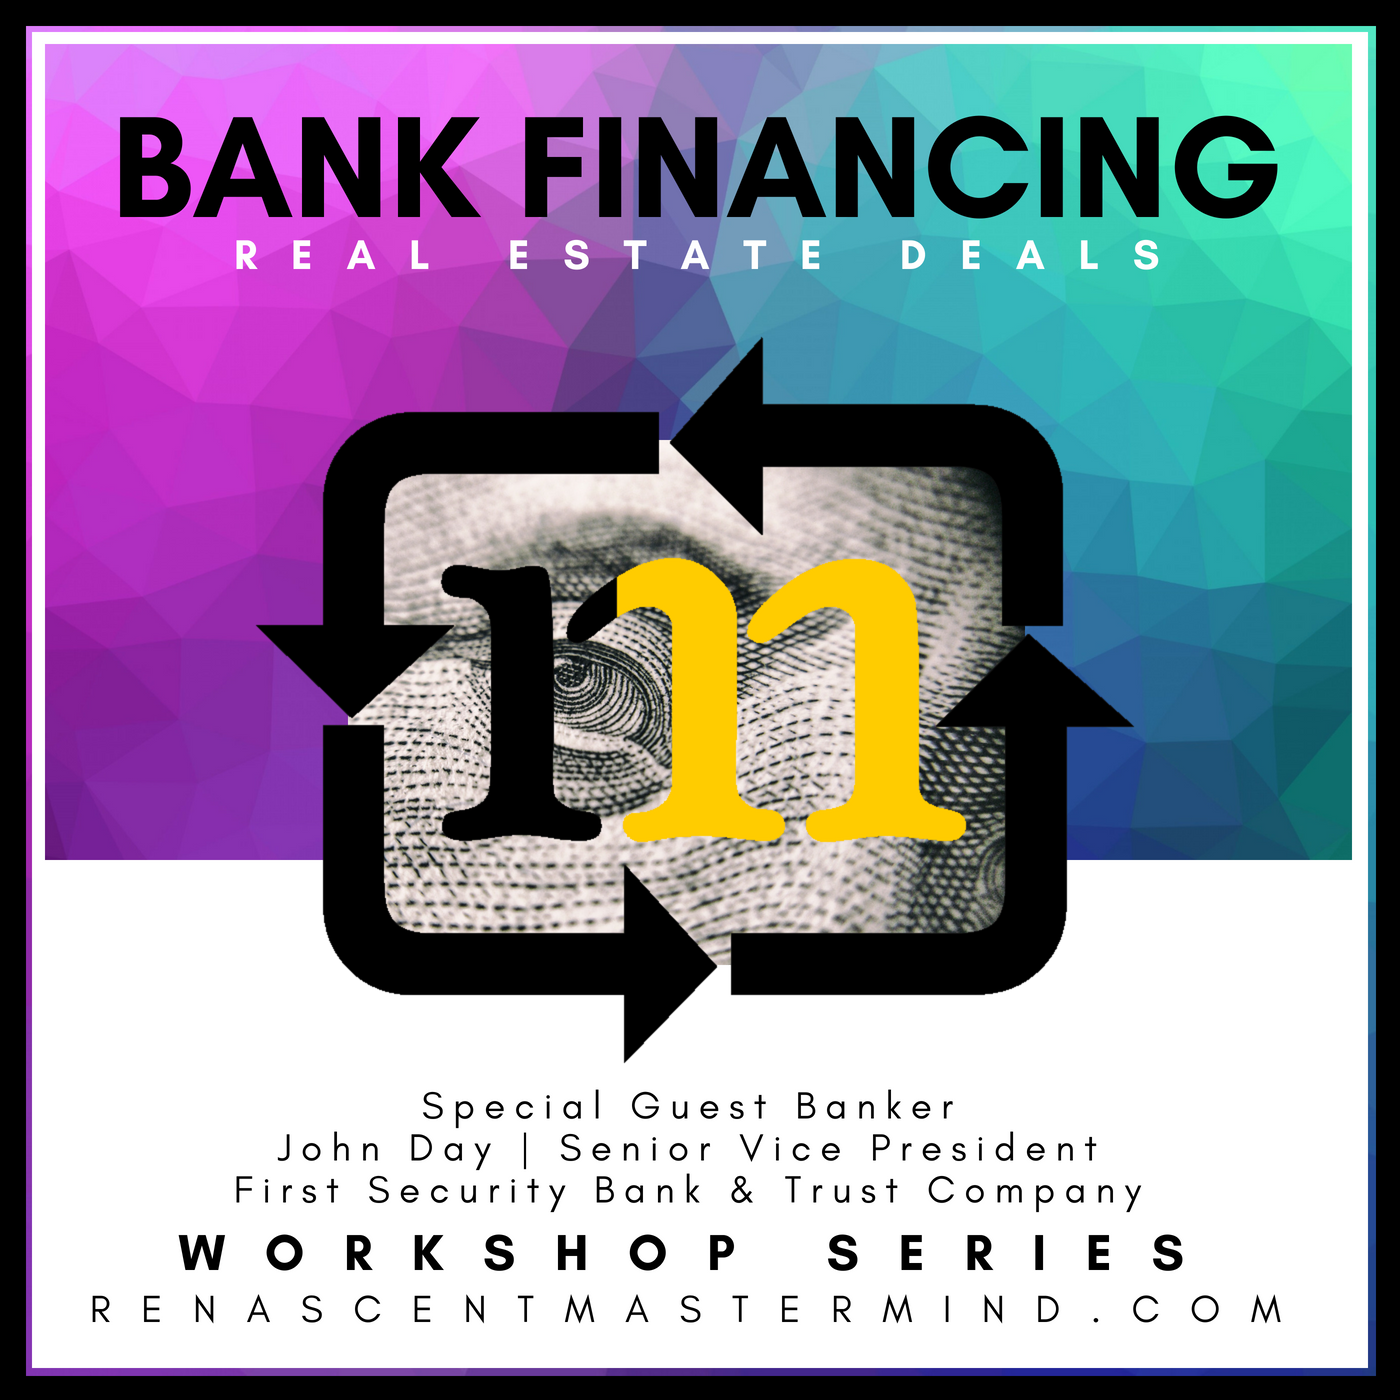 Bank Financing Real Estate Deals with John Day of First Security Bank & Trust Company | Workshop Series